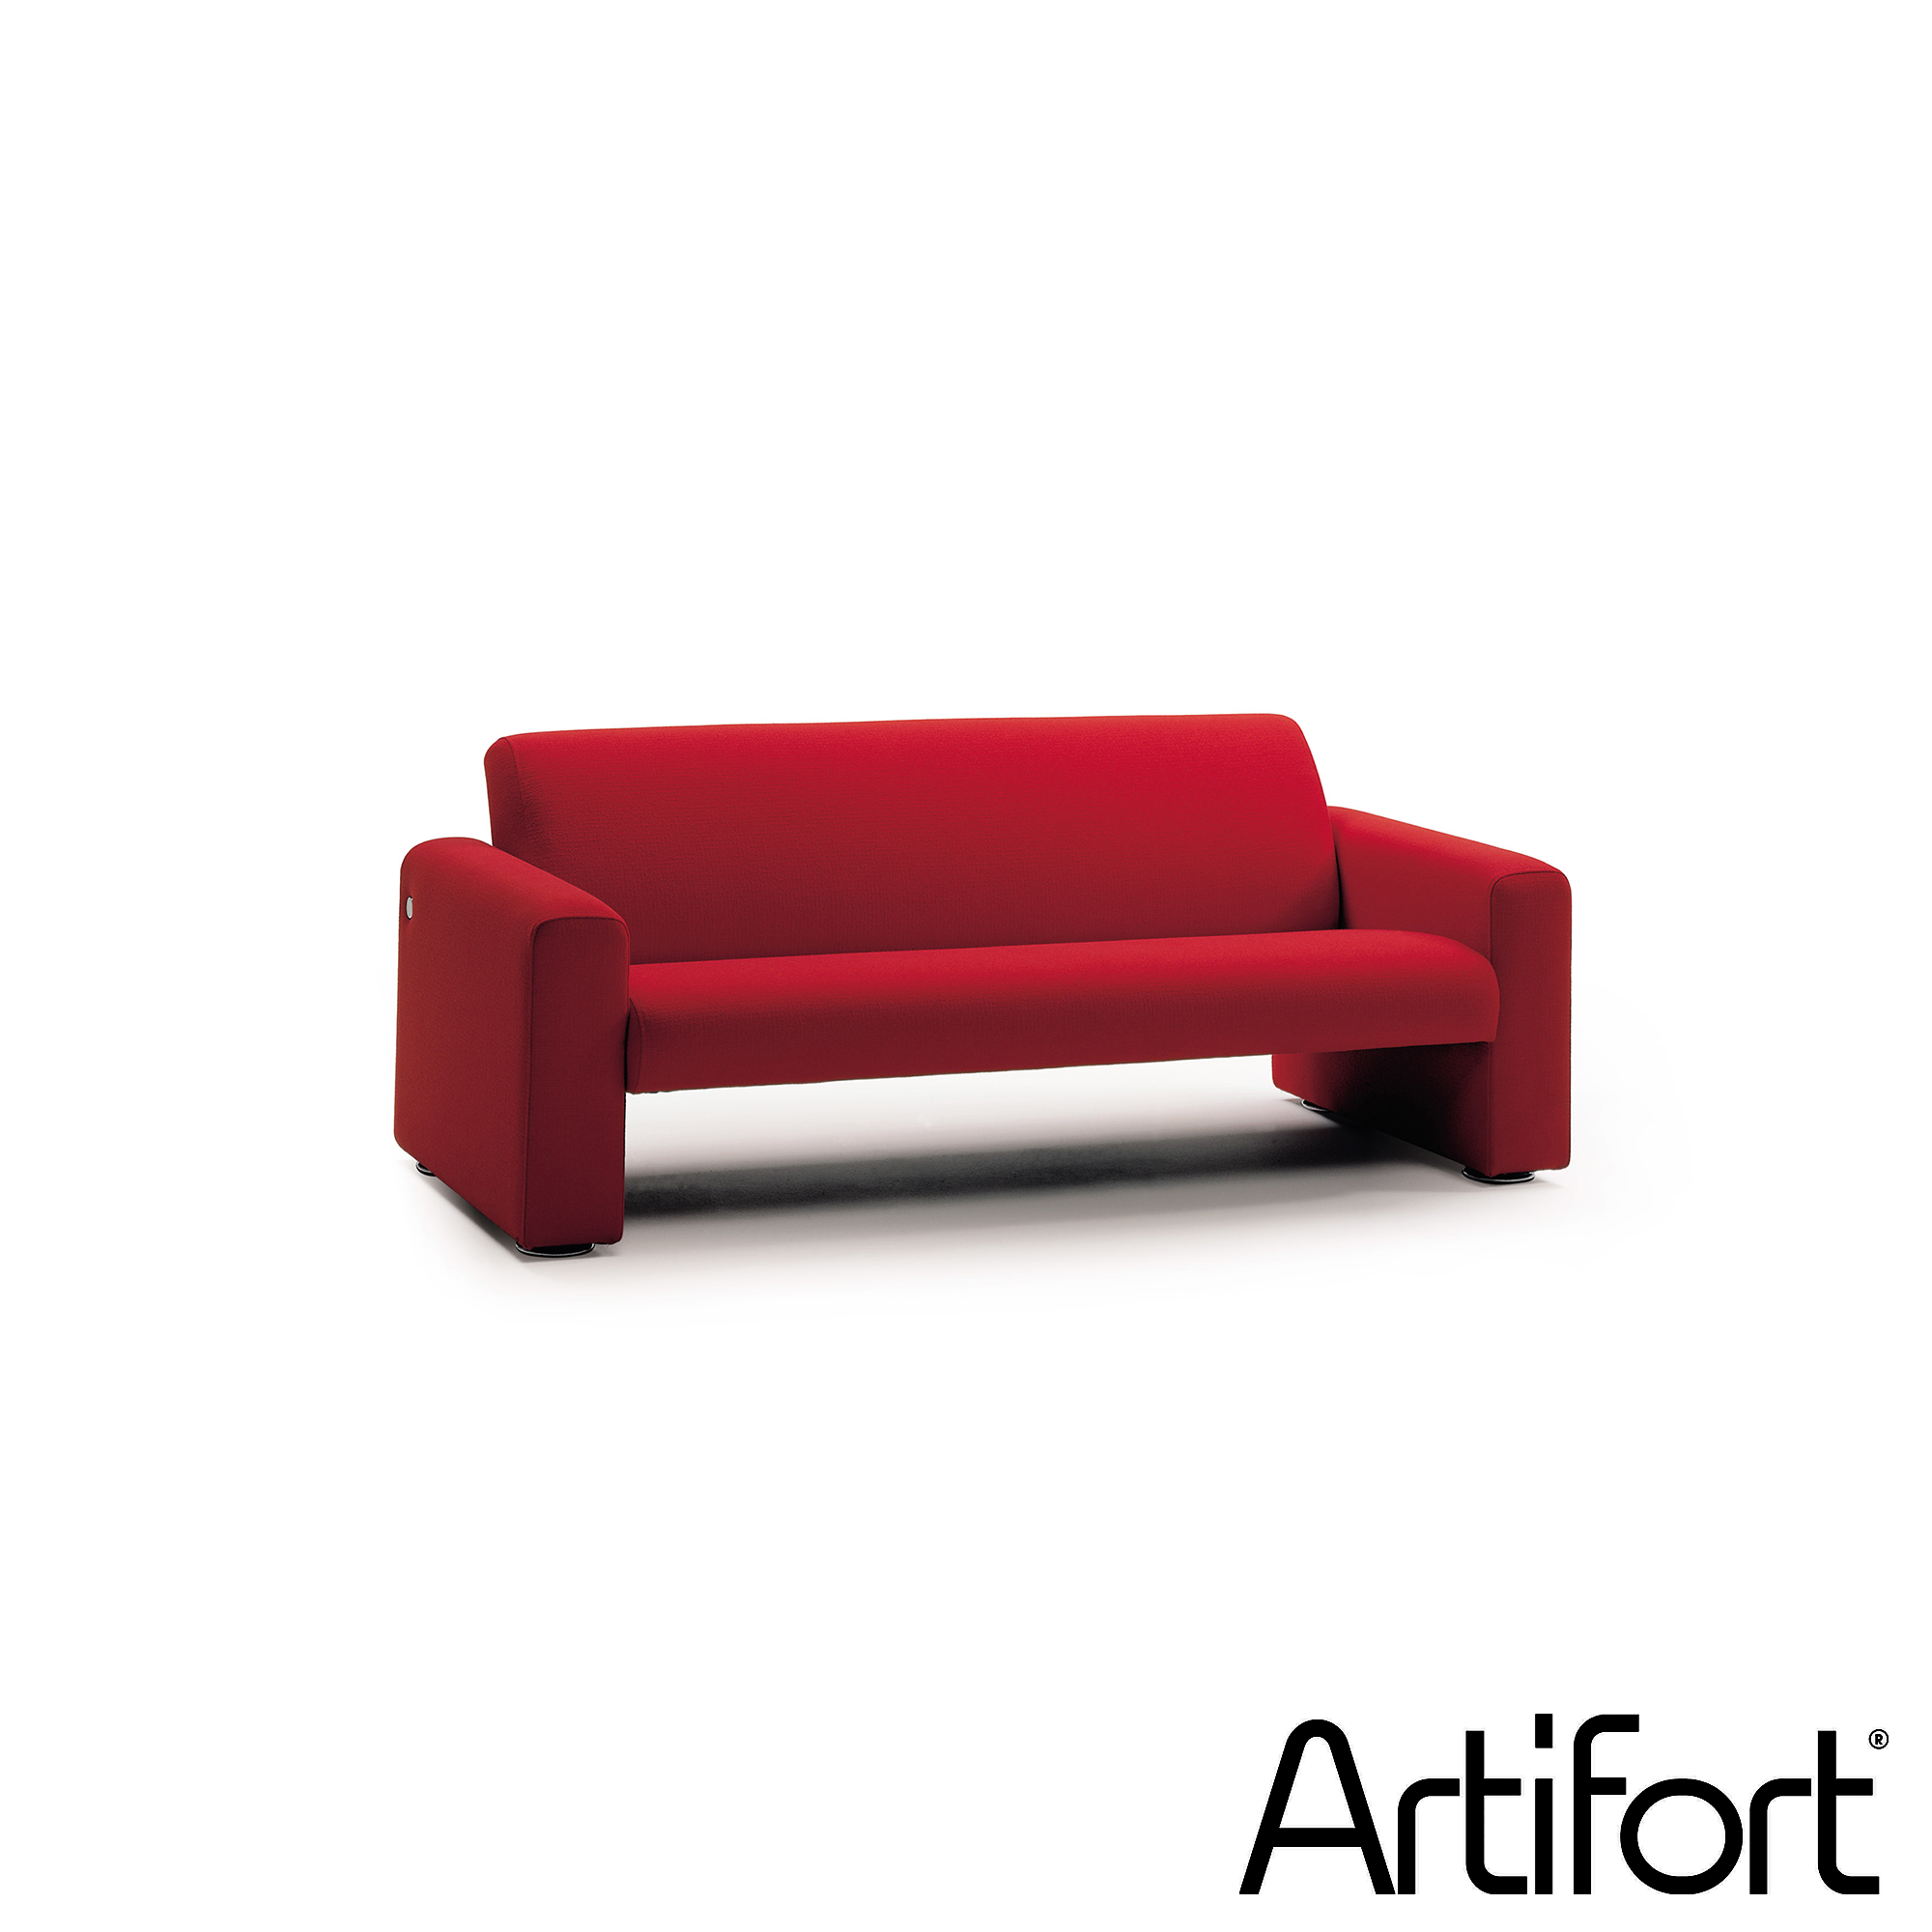 Artifort - 691 Sofa